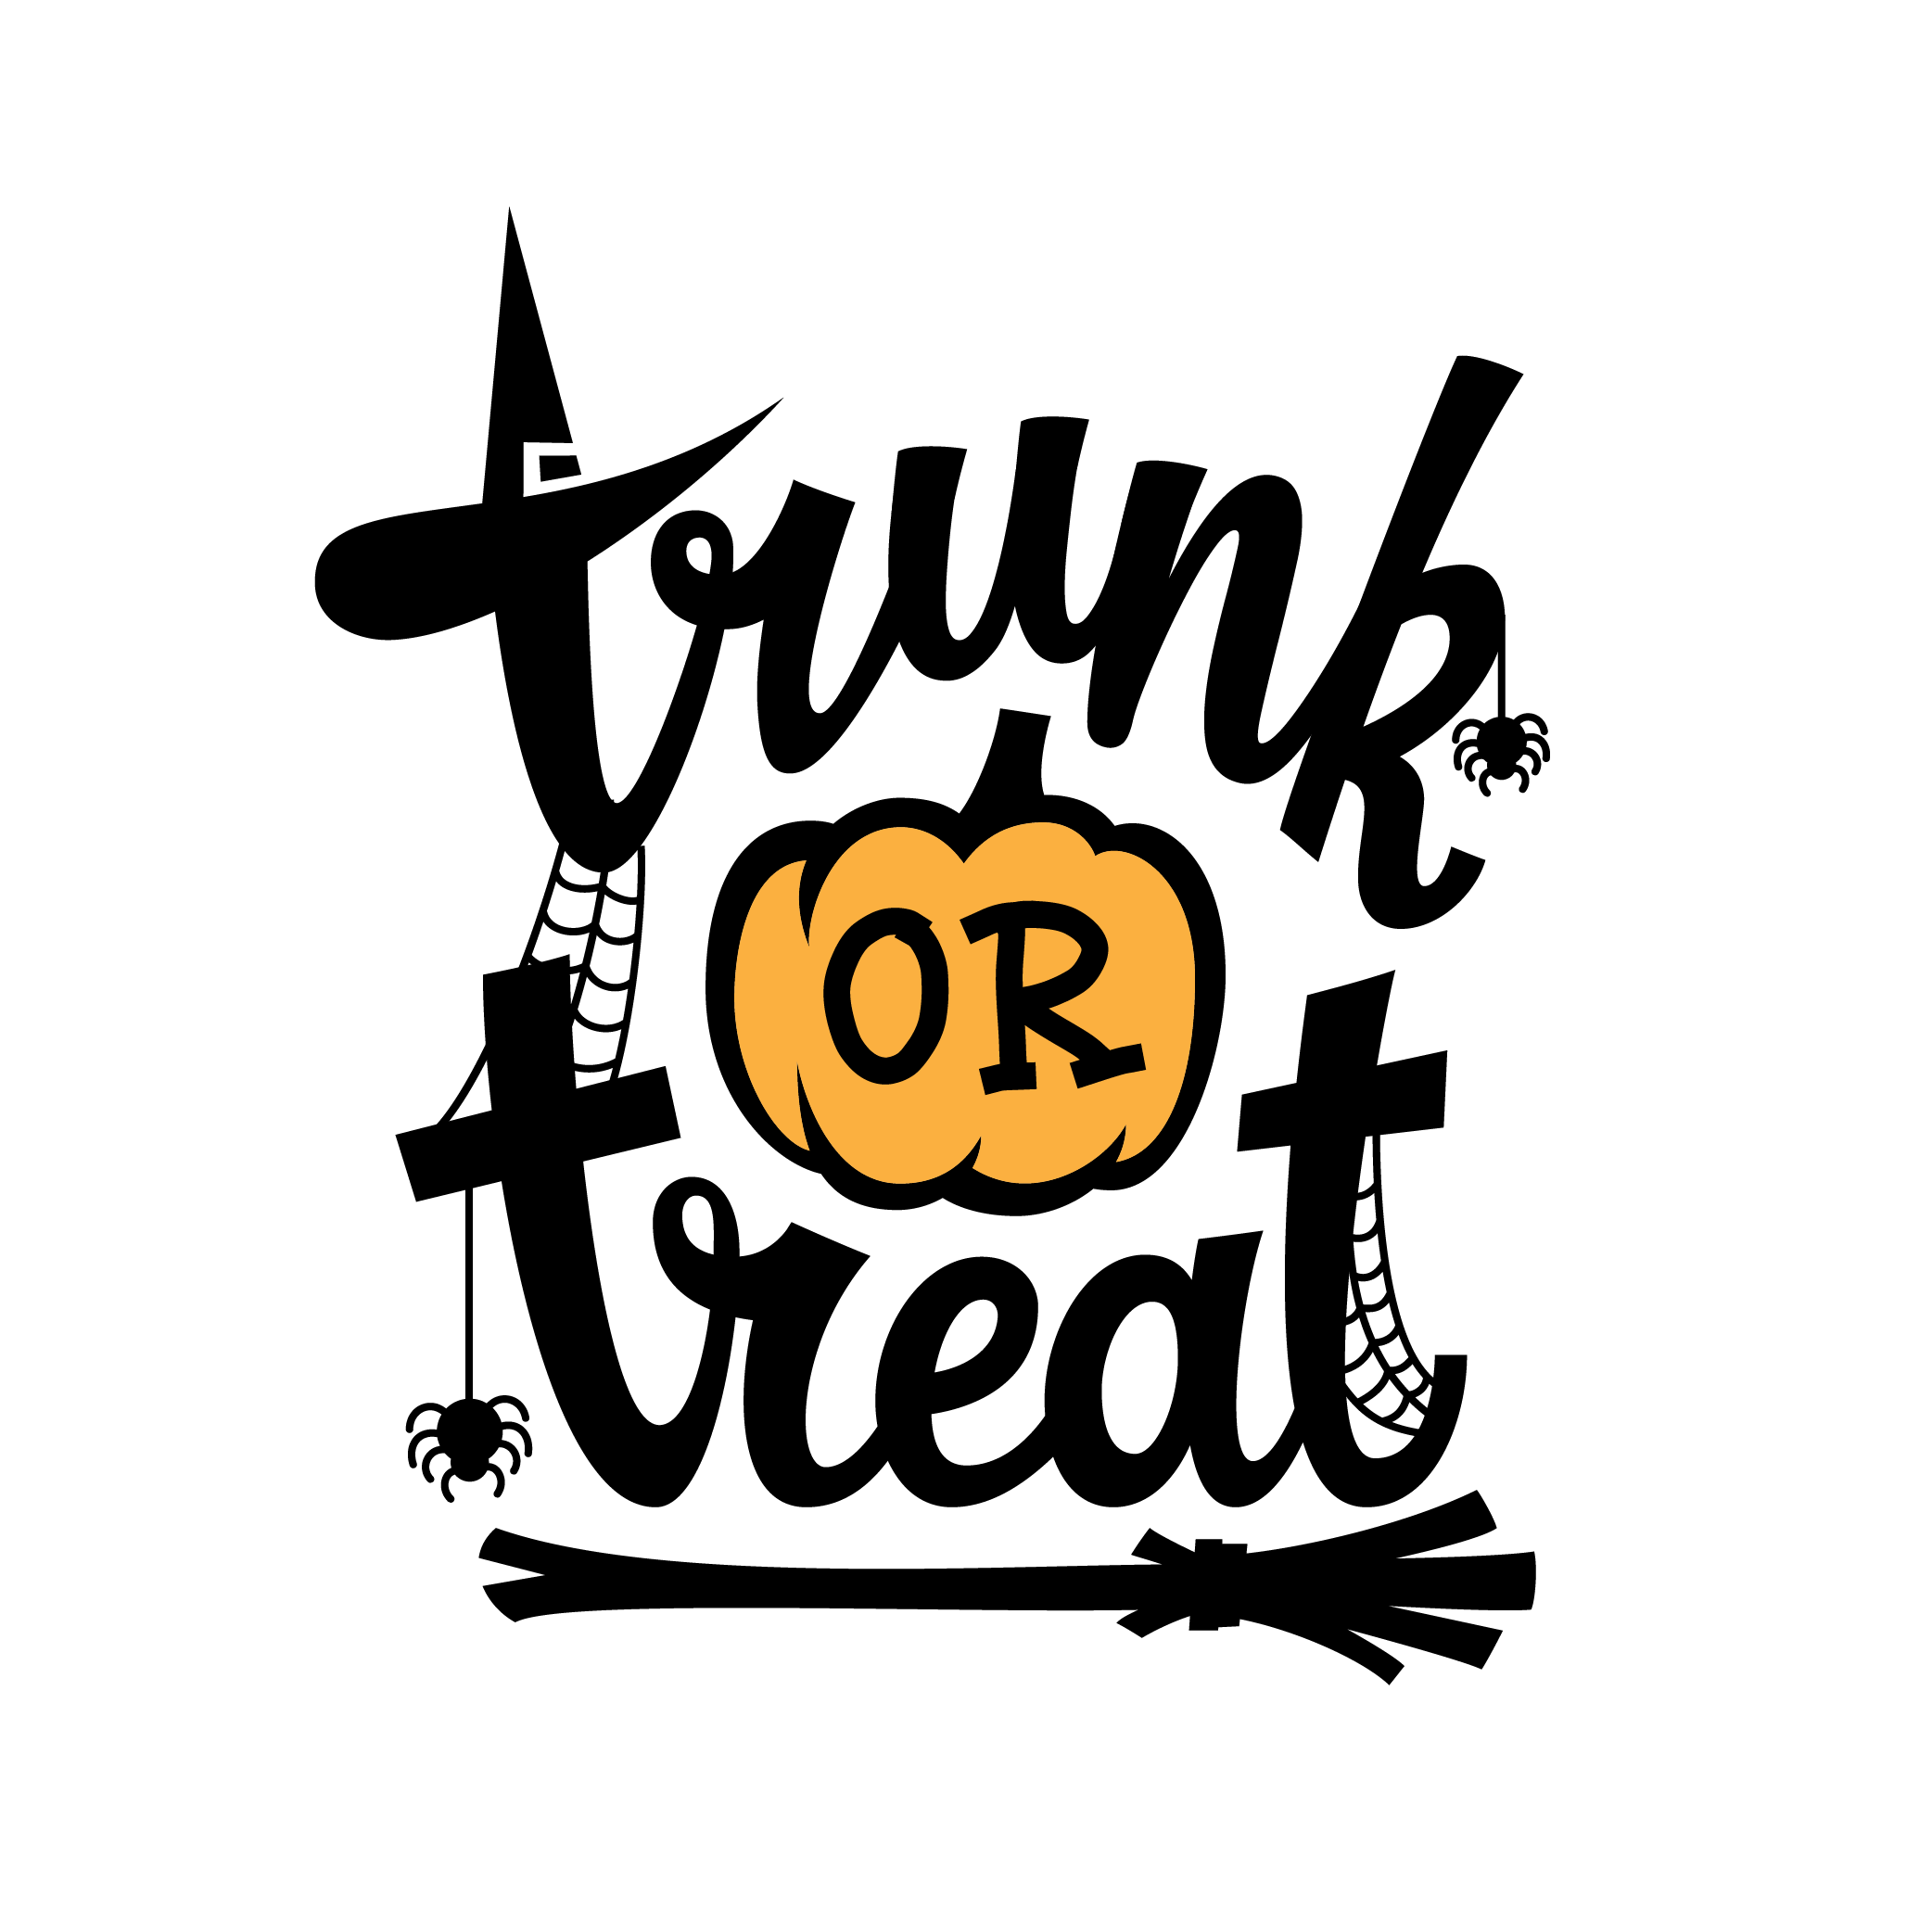 trunk or treat-01.png